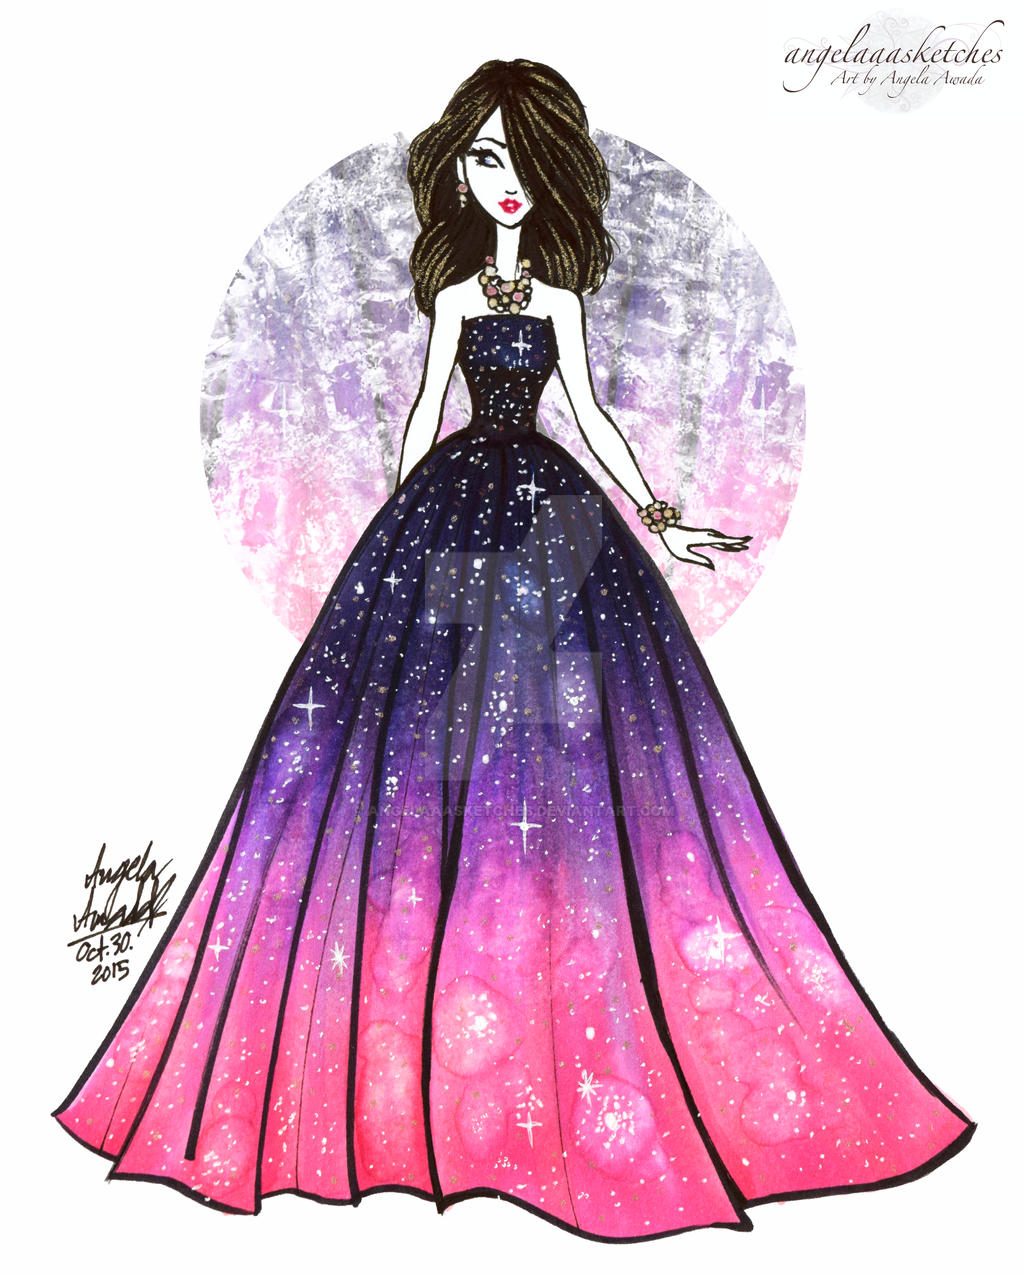 Galaxies Dress by angelaaasketches on DeviantArt